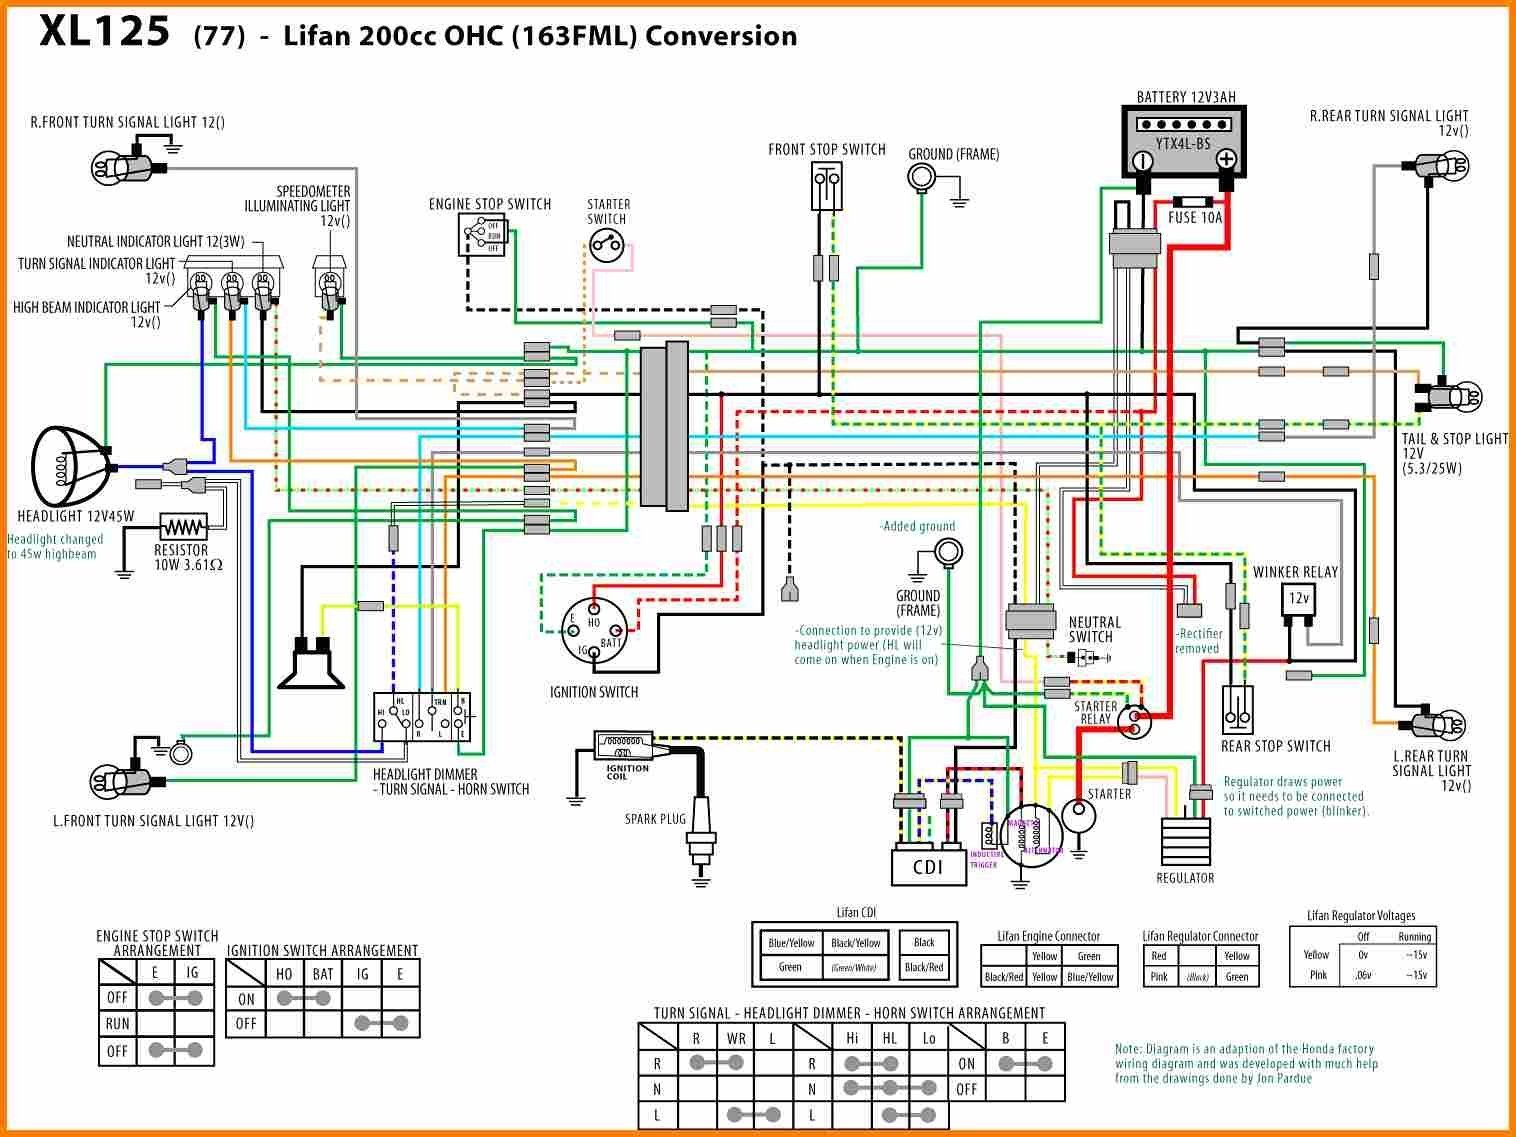 Lifan 110Cc Engine Diagram Lifan 125Cc Wiring Diagram - Wiring ... on quad wiring diagram, cdi wiring diagram, x12 wiring diagram, 70cc wiring diagram, kawasaki wiring diagram, chinese wiring diagram, motor wiring diagram, ssr wiring diagram, scooter wiring diagram, yamaha 4 wheeler wiring diagram, eagle 100cc atv wiring diagram, motorcycle wiring diagram, road wiring diagram, loncin 110 wiring diagram, baja 90 atv wiring diagram, 47cc wiring diagram, honda wiring diagram, 49cc 2 stroke wiring diagram, electric wiring diagram, 125cc atv wiring diagram,